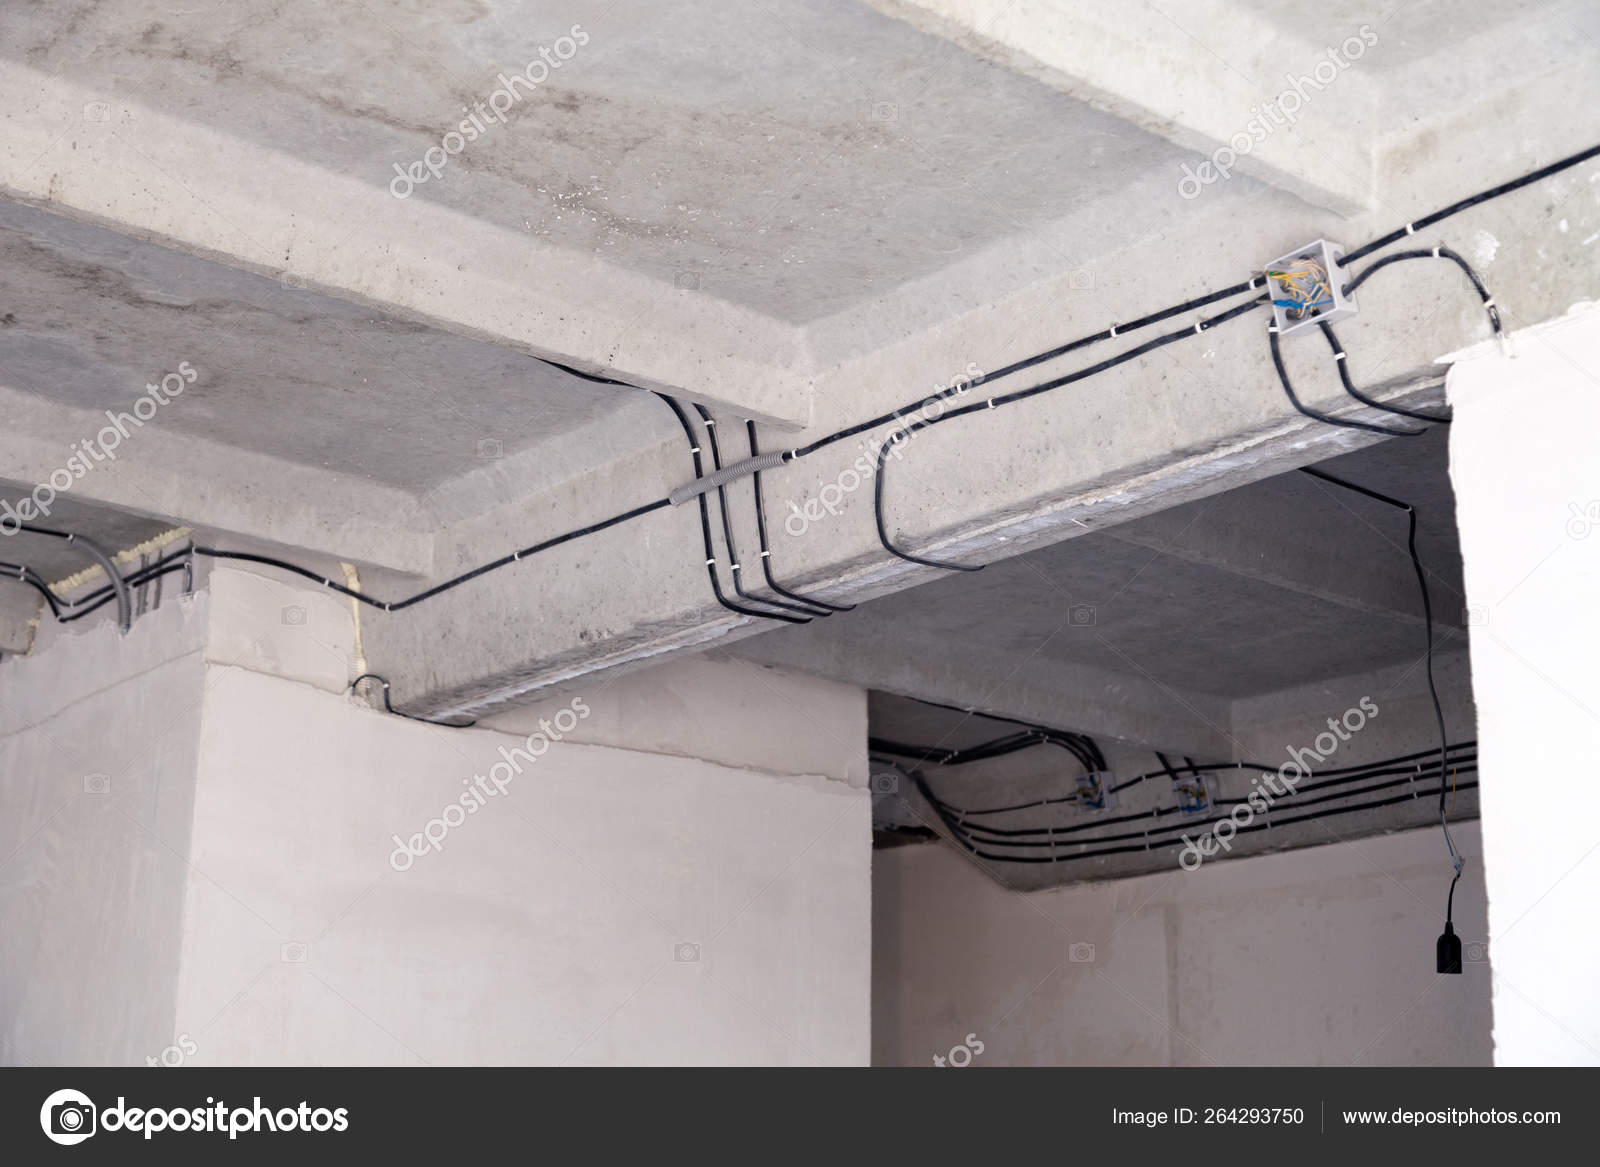 Cable laying ceiling. Electrical wires on wall. Wiring replacement.  Connecting light flat or office. Professional installation bulb, electrical  outlet, cables, wires, switches. Insulation — Stock Photo © mikrokon  #264293750Depositphotos